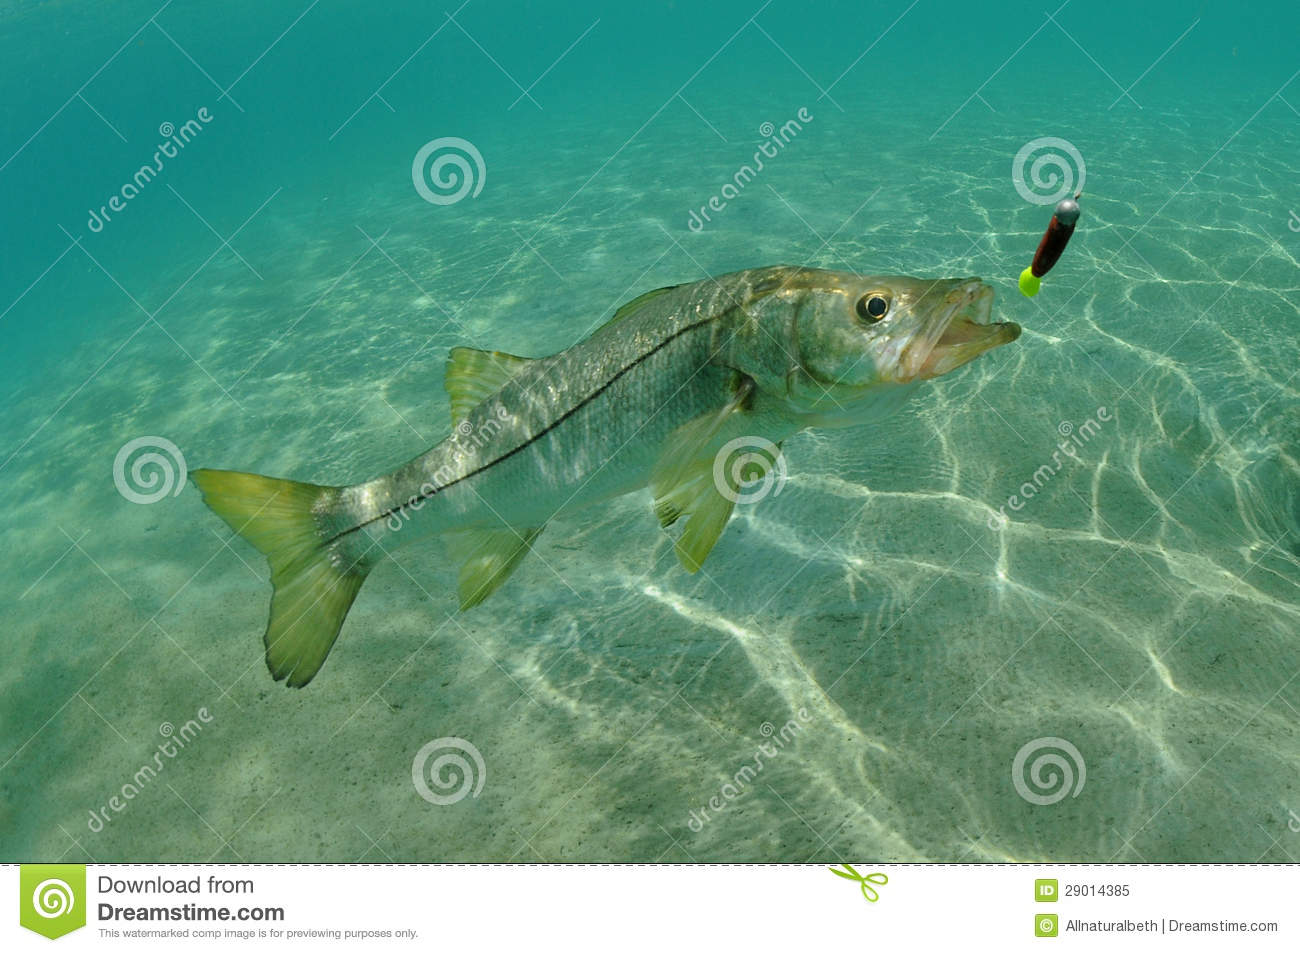 Snook in ocean chasing lure stock image image of for Snook fishing lures